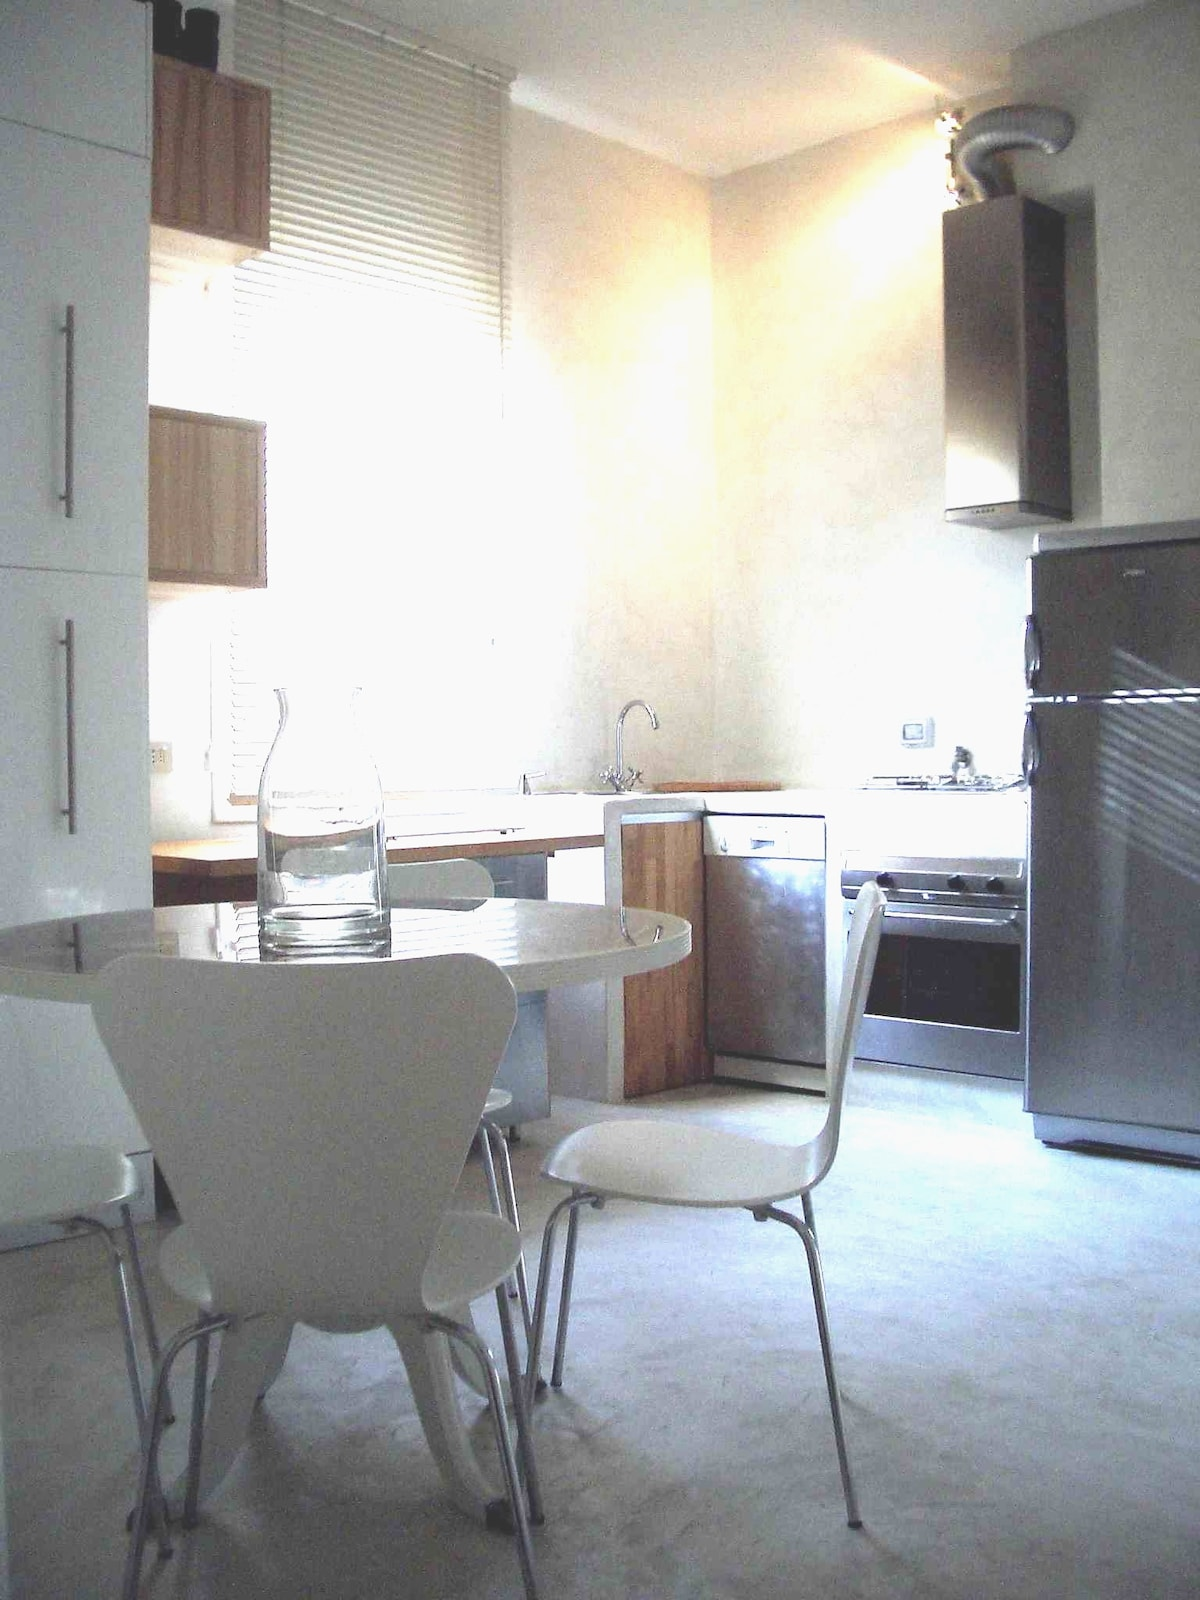 fully equipped eat-in kitchen with heaps of charm and atmosphere. Bright for breakfast and romantic for dinner.